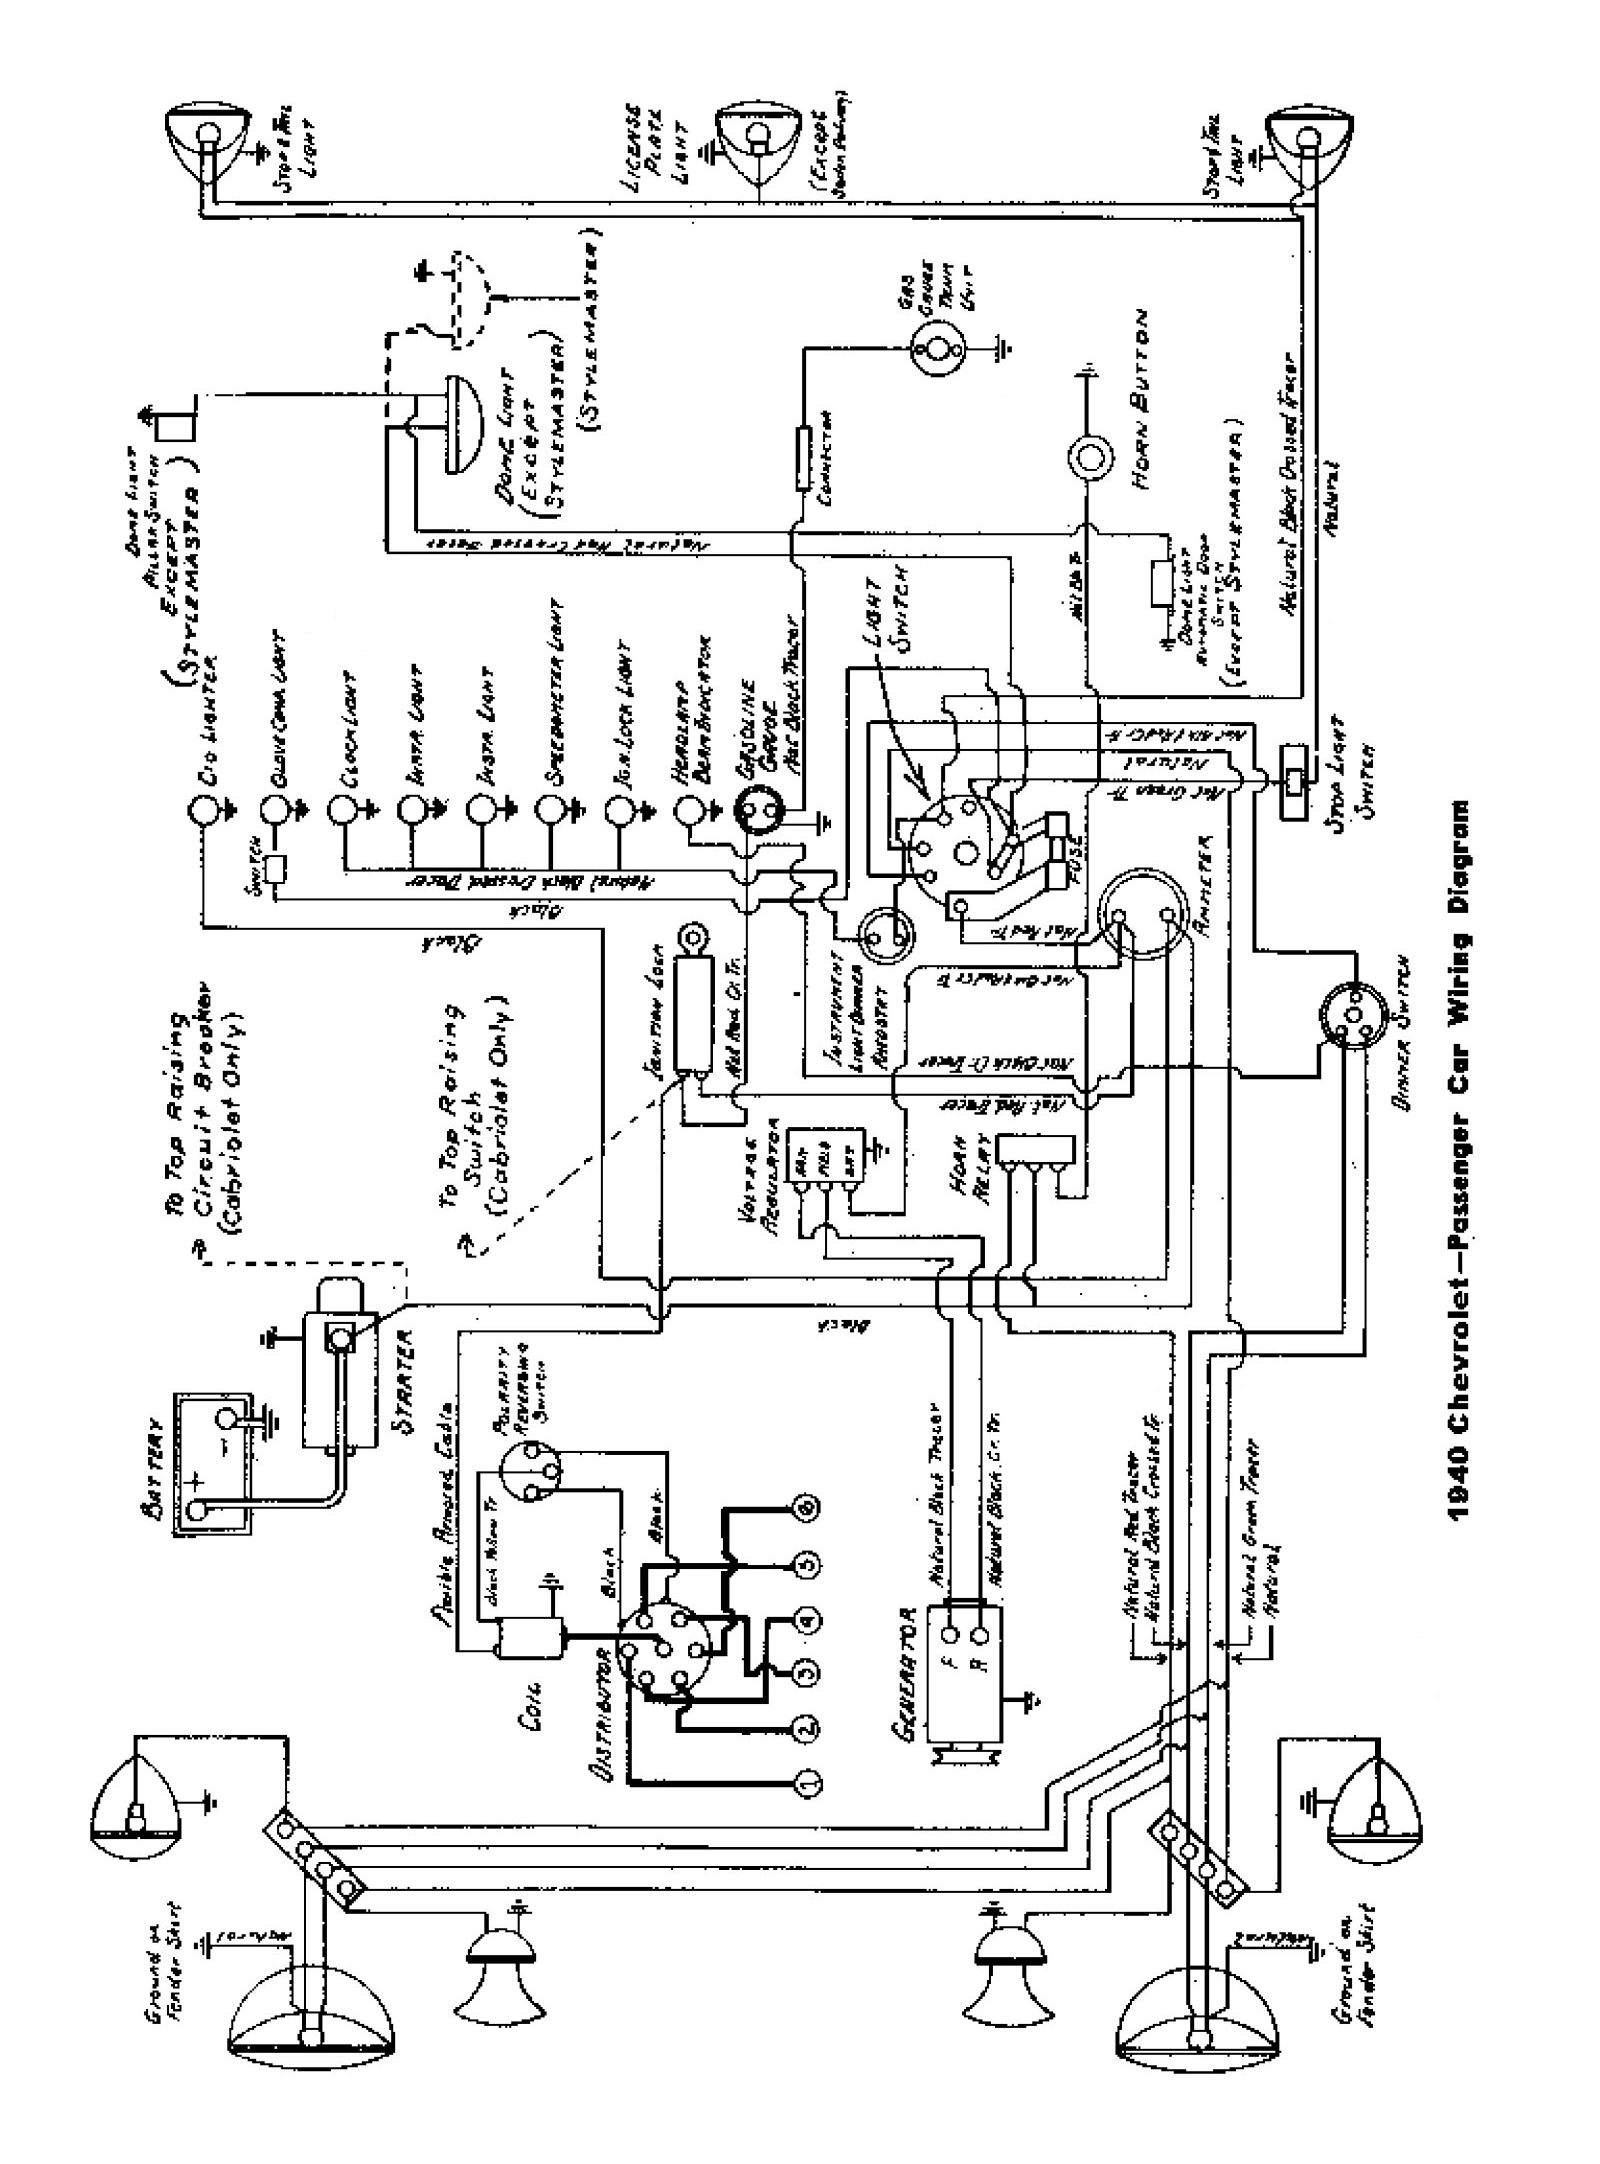 40car 1948 ford f1 wiring diagram wiring diagram simonand ford maverick wiring diagram at gsmx.co